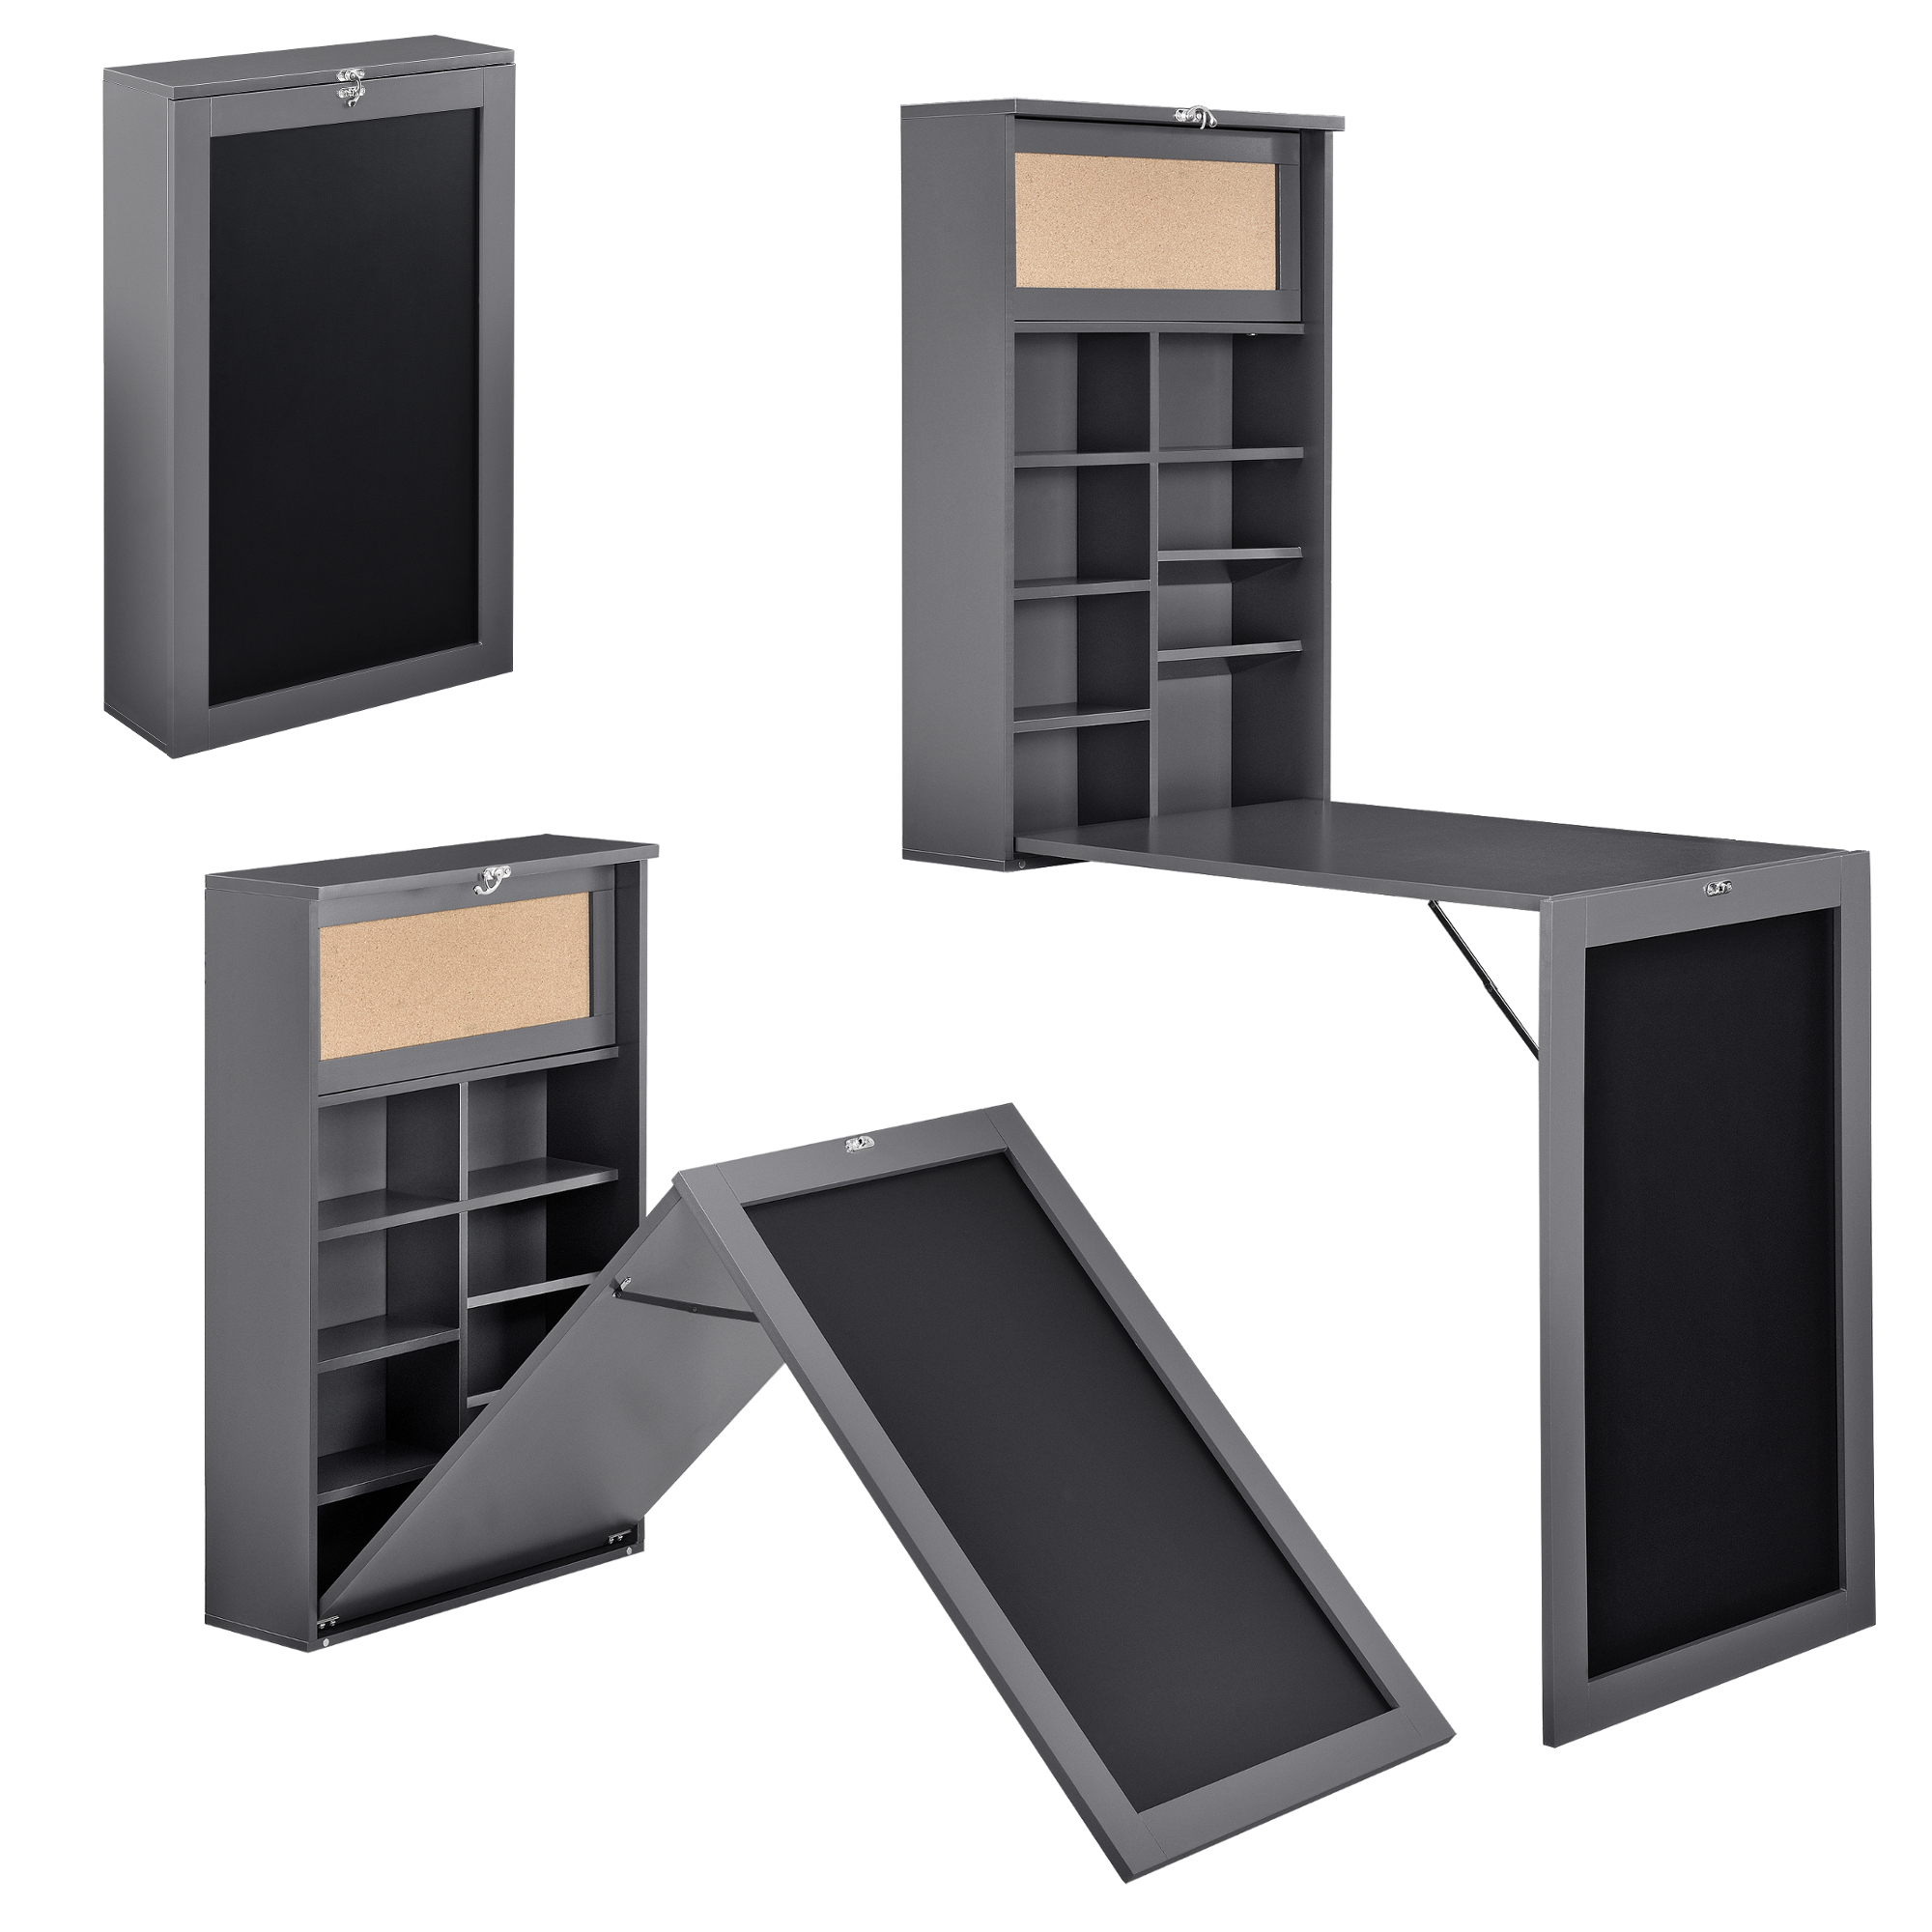 wandtisch grau schreibtisch tisch regal wand. Black Bedroom Furniture Sets. Home Design Ideas